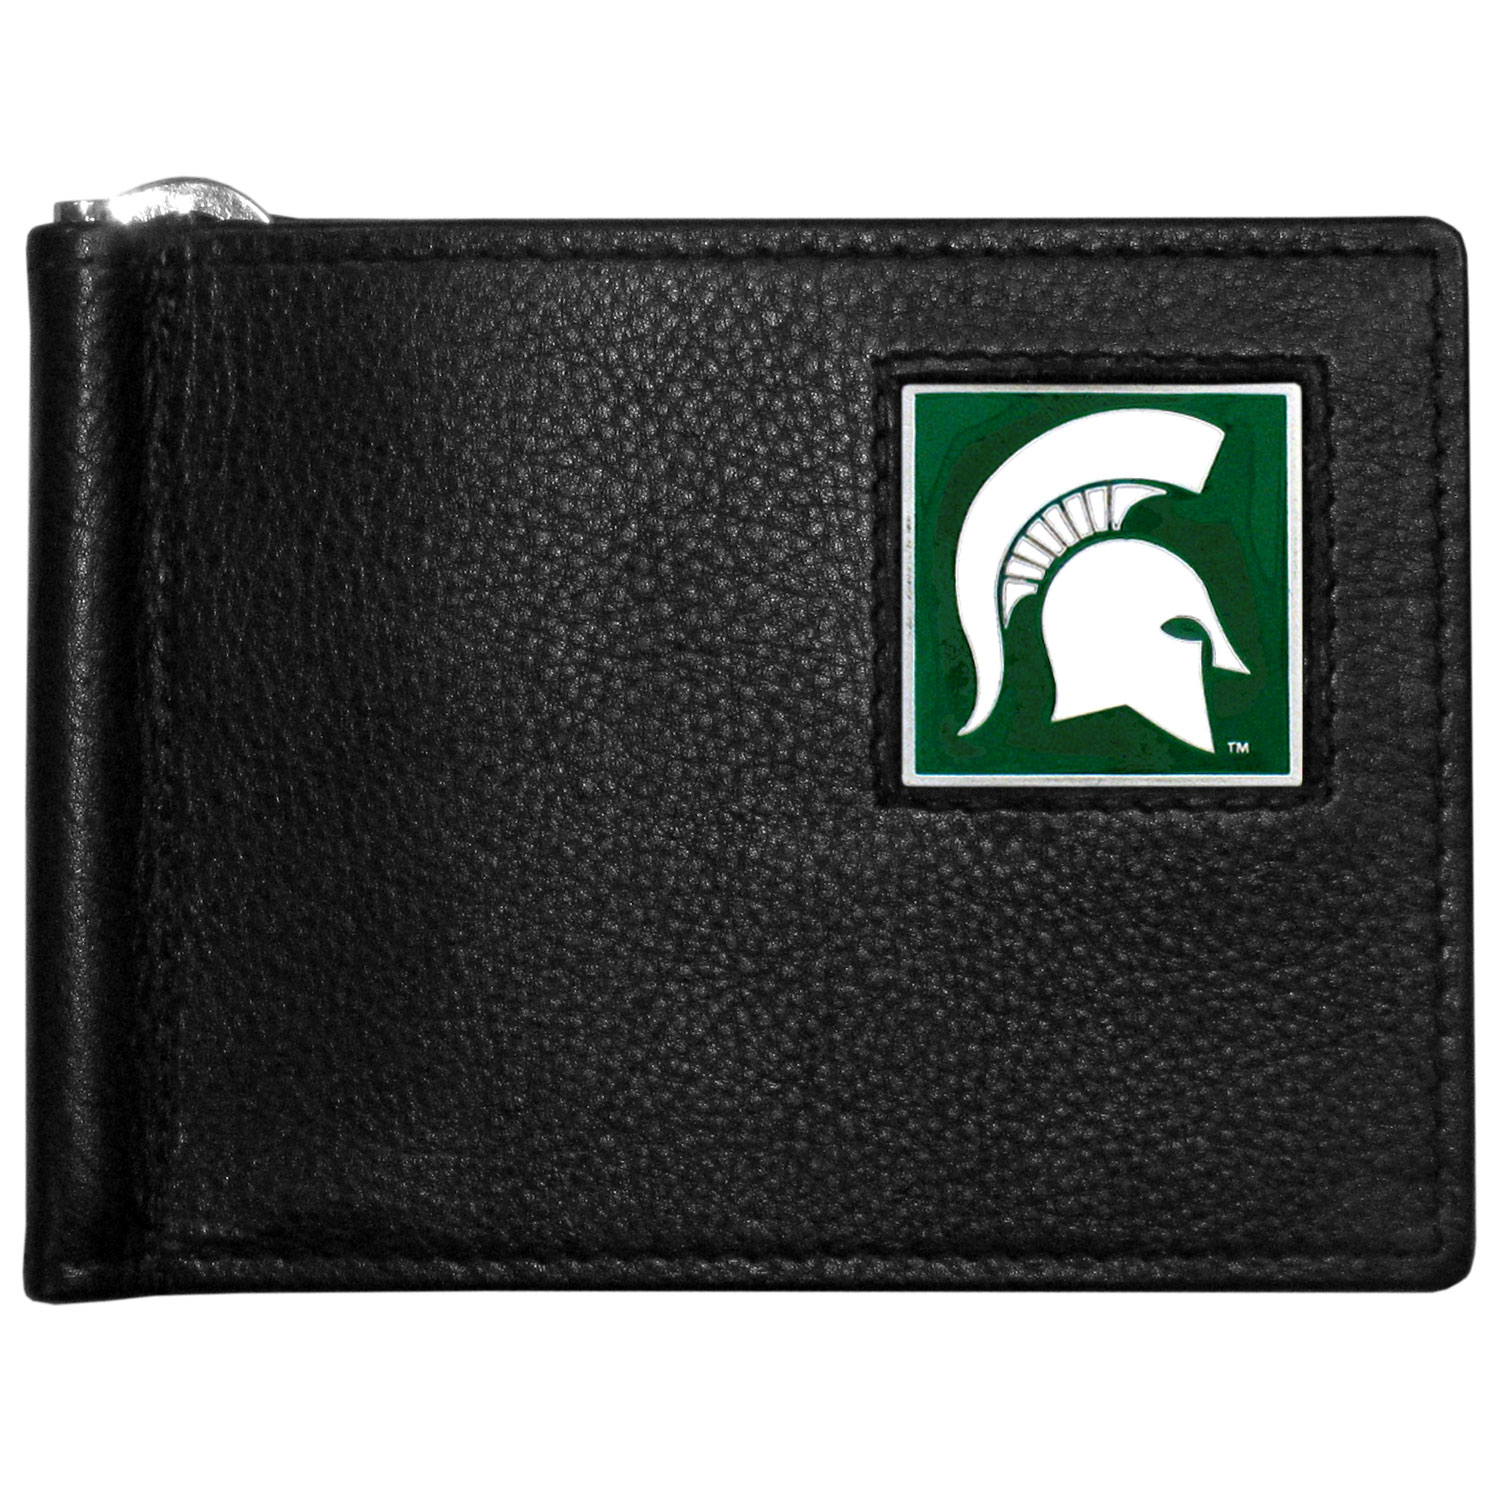 Michigan St. Spartans Leather Bill Clip Wallet - This cool new style wallet features an inner, metal bill clip that lips up for easy access. The super slim wallet holds tons of stuff with ample pockets, credit card slots & windowed ID slot. The wallet is made of genuine fine grain leather and it finished with a metal Michigan St. Spartans emblem. The wallet is shipped in gift box packaging.